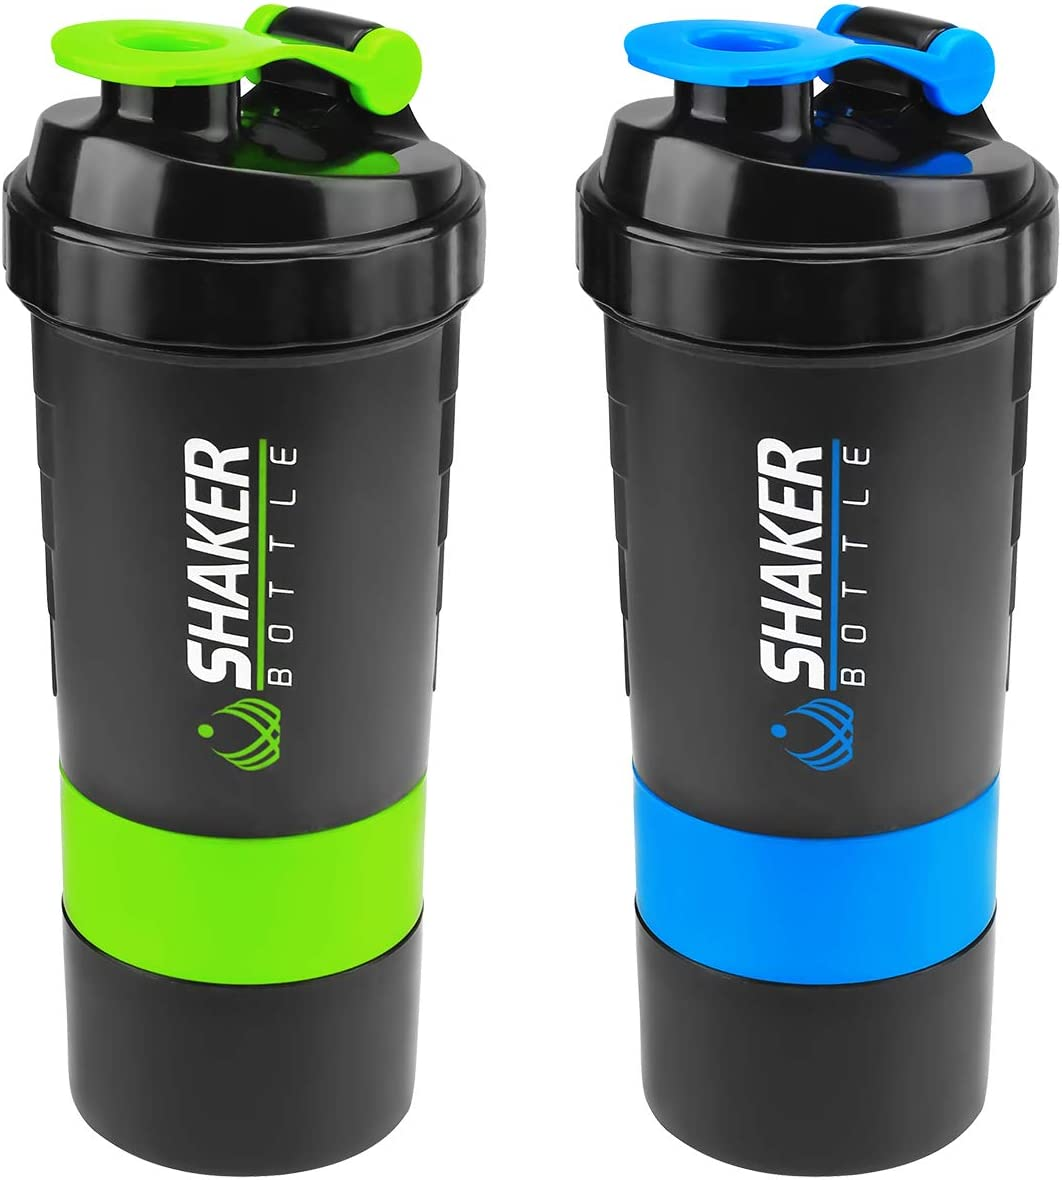 Protein Shaker Bottle, 22oz Shake Bottle with 3 compartments Storage for Powder, Leak Proof Sport Mixer Bottle, Bap-free and Durable, Measurement, Mixing Grids, Classic Shake Cup for Post Pre Workout